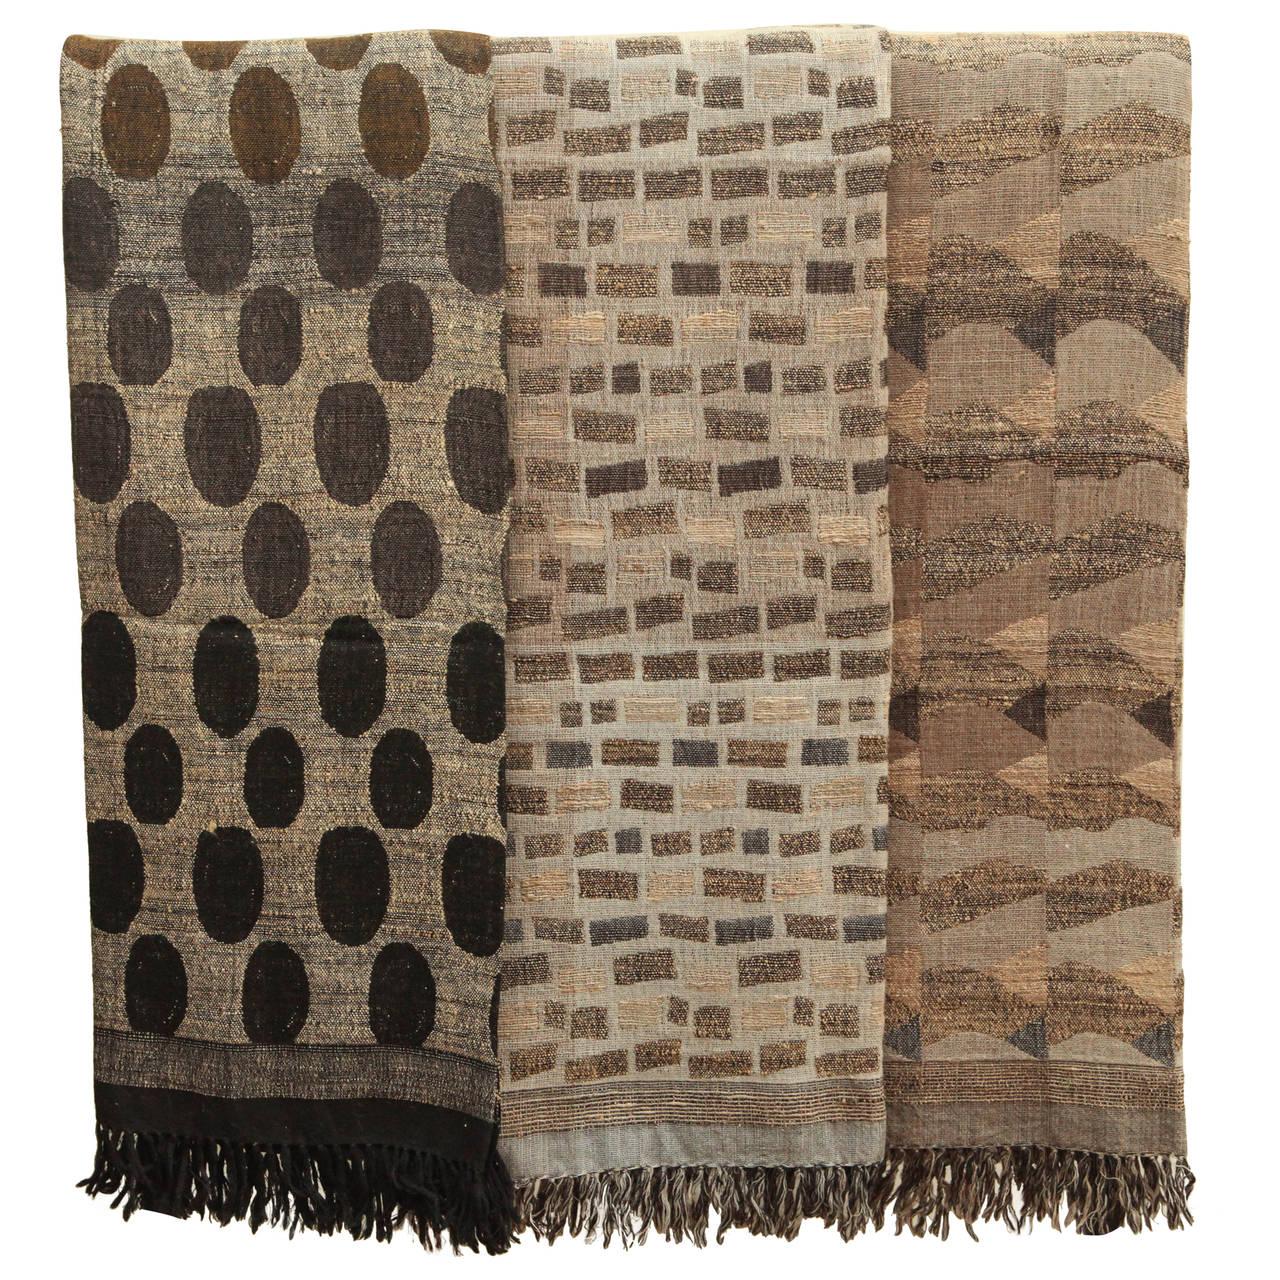 Indian Hand Woven Throws Black Brown Gray Beige Wool